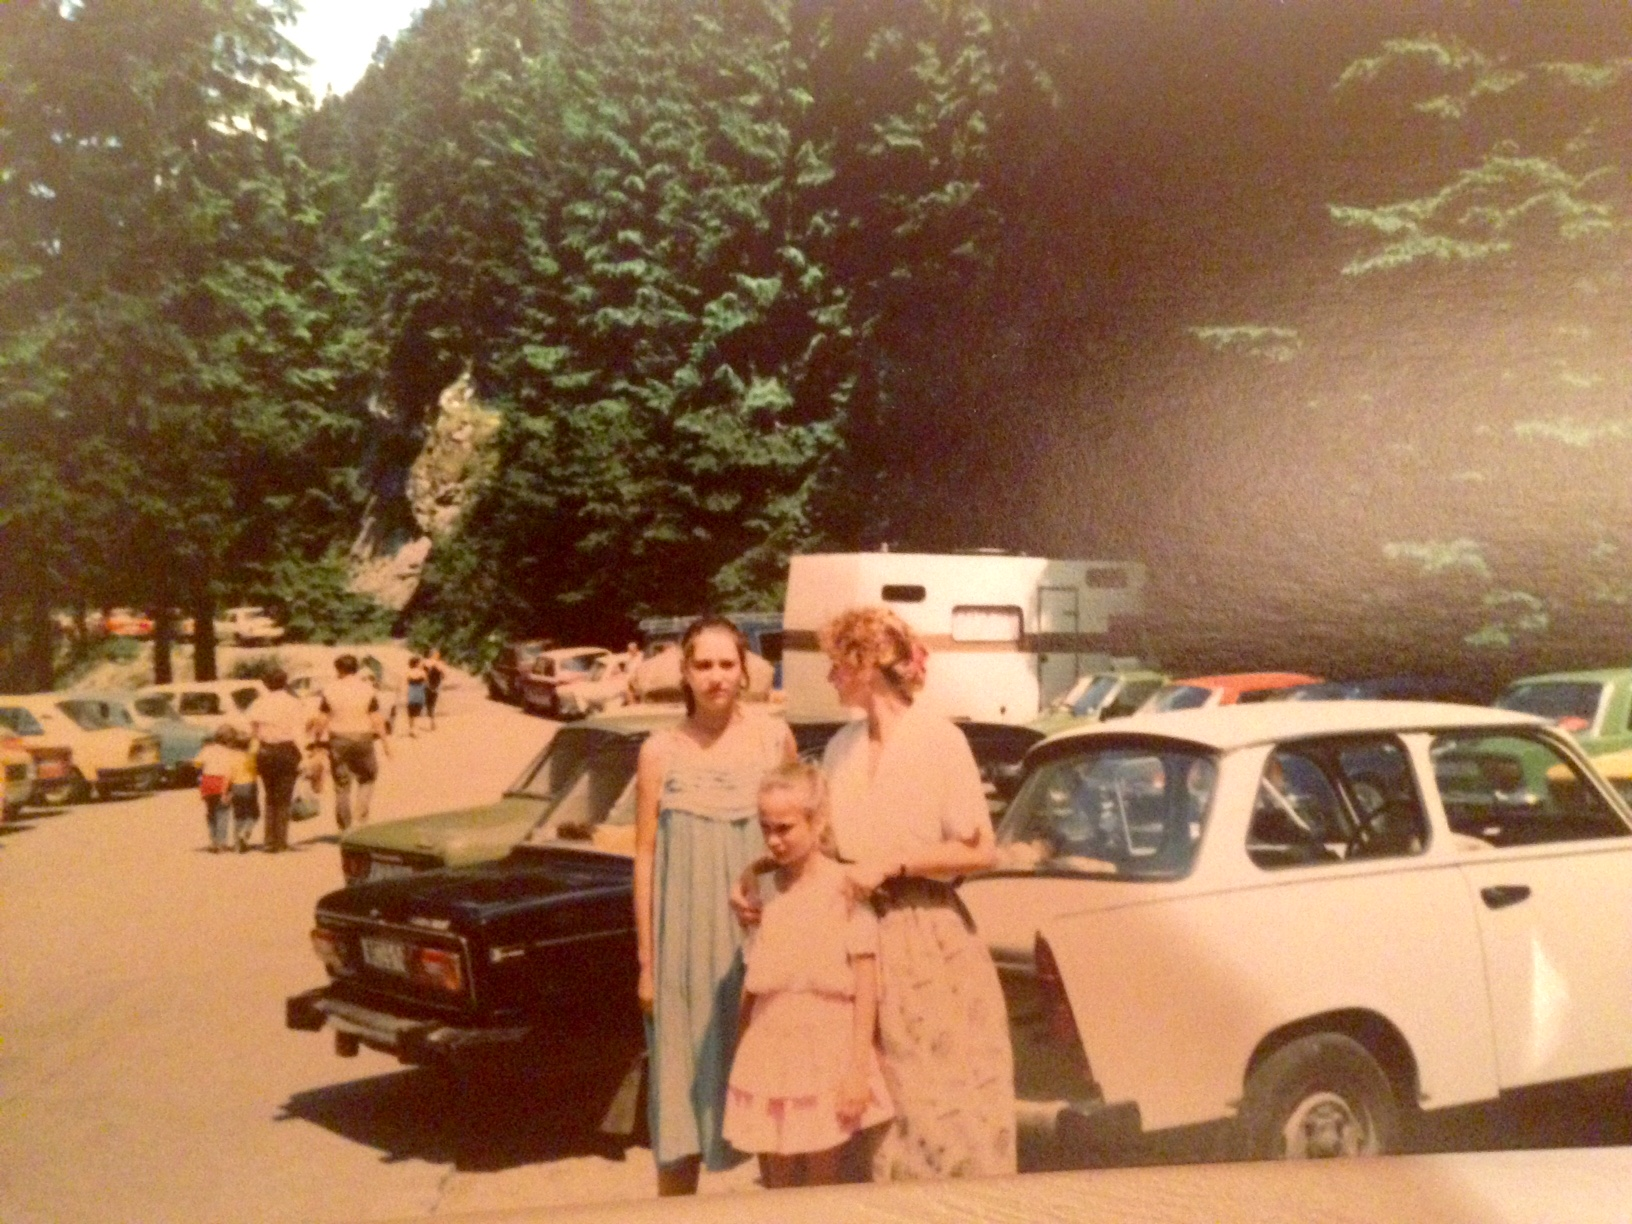 Rebel, Romantique and our mum in East Germany, note the Trabi in the background!